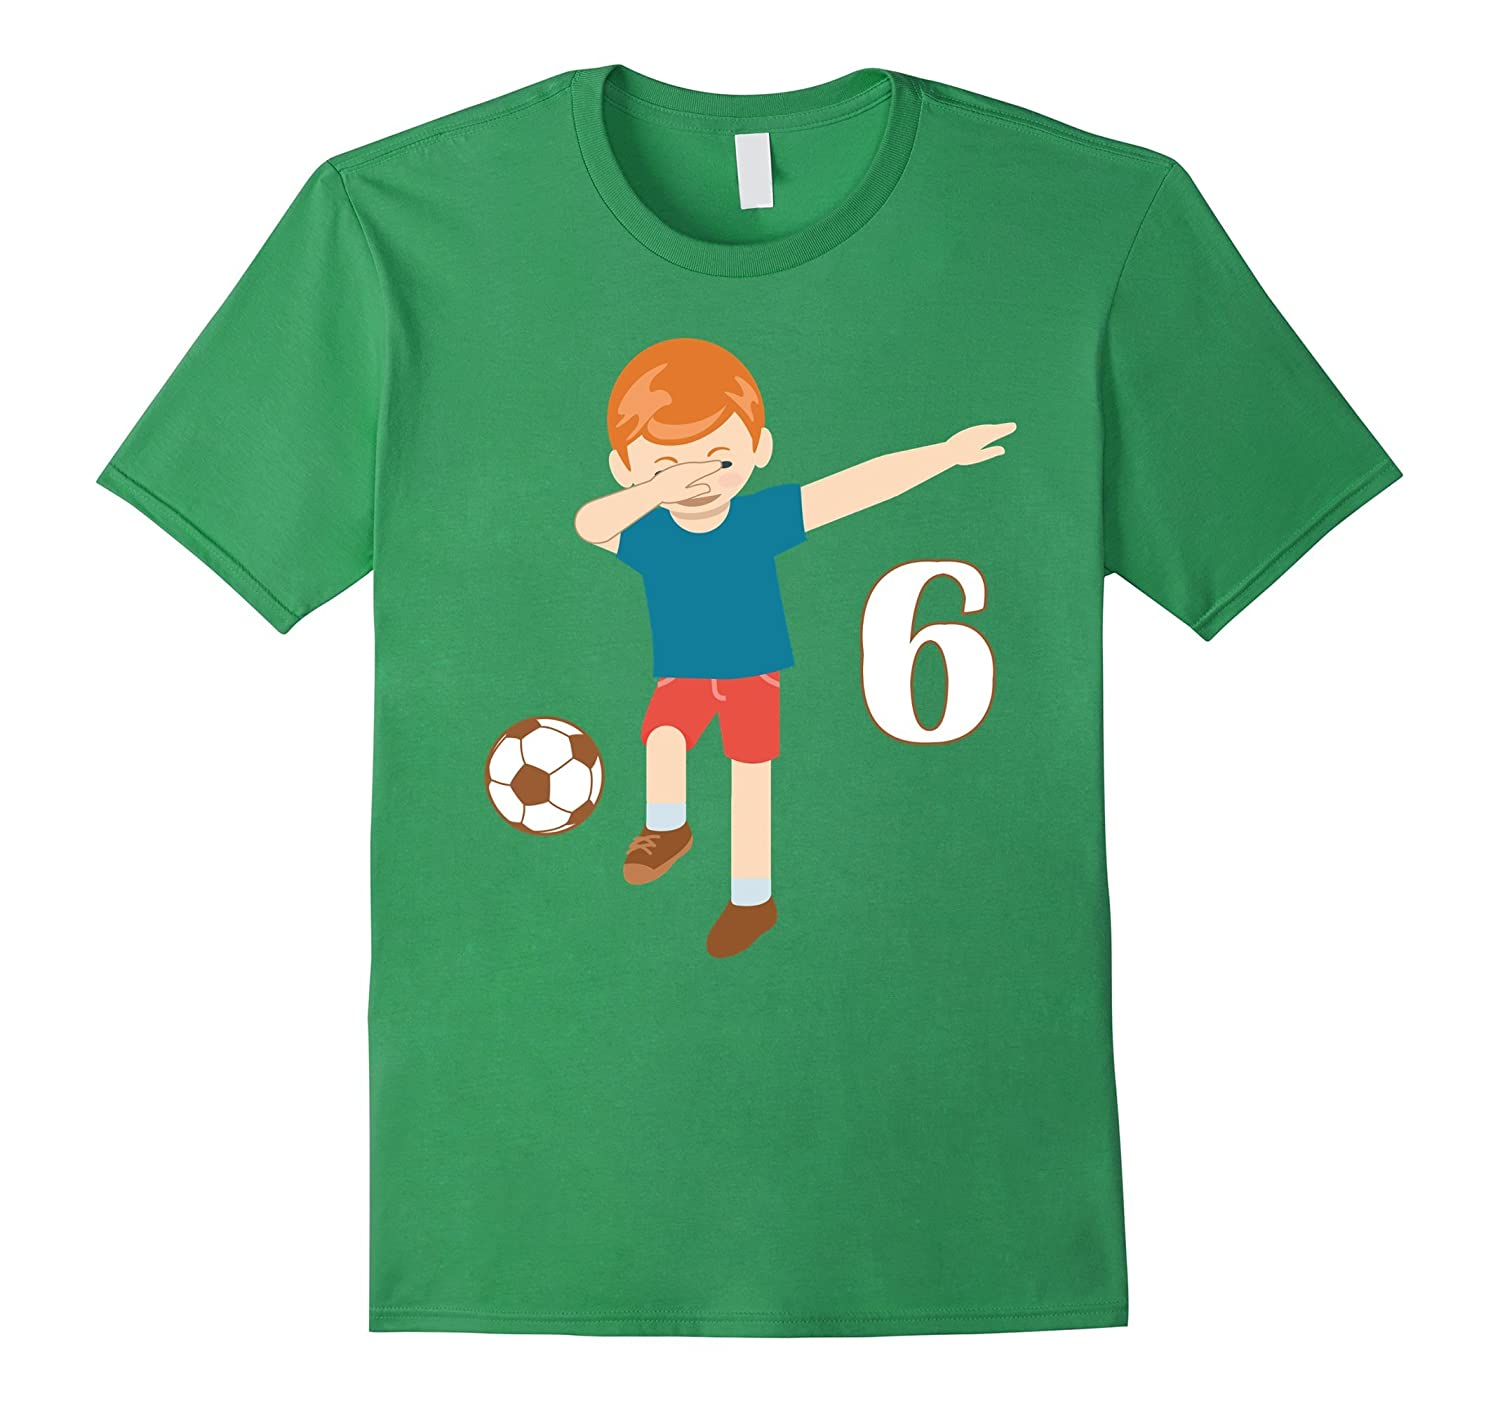 Dabbing Dance 6 Years Old Birthday Shirt Boys Soccer Players ANZ